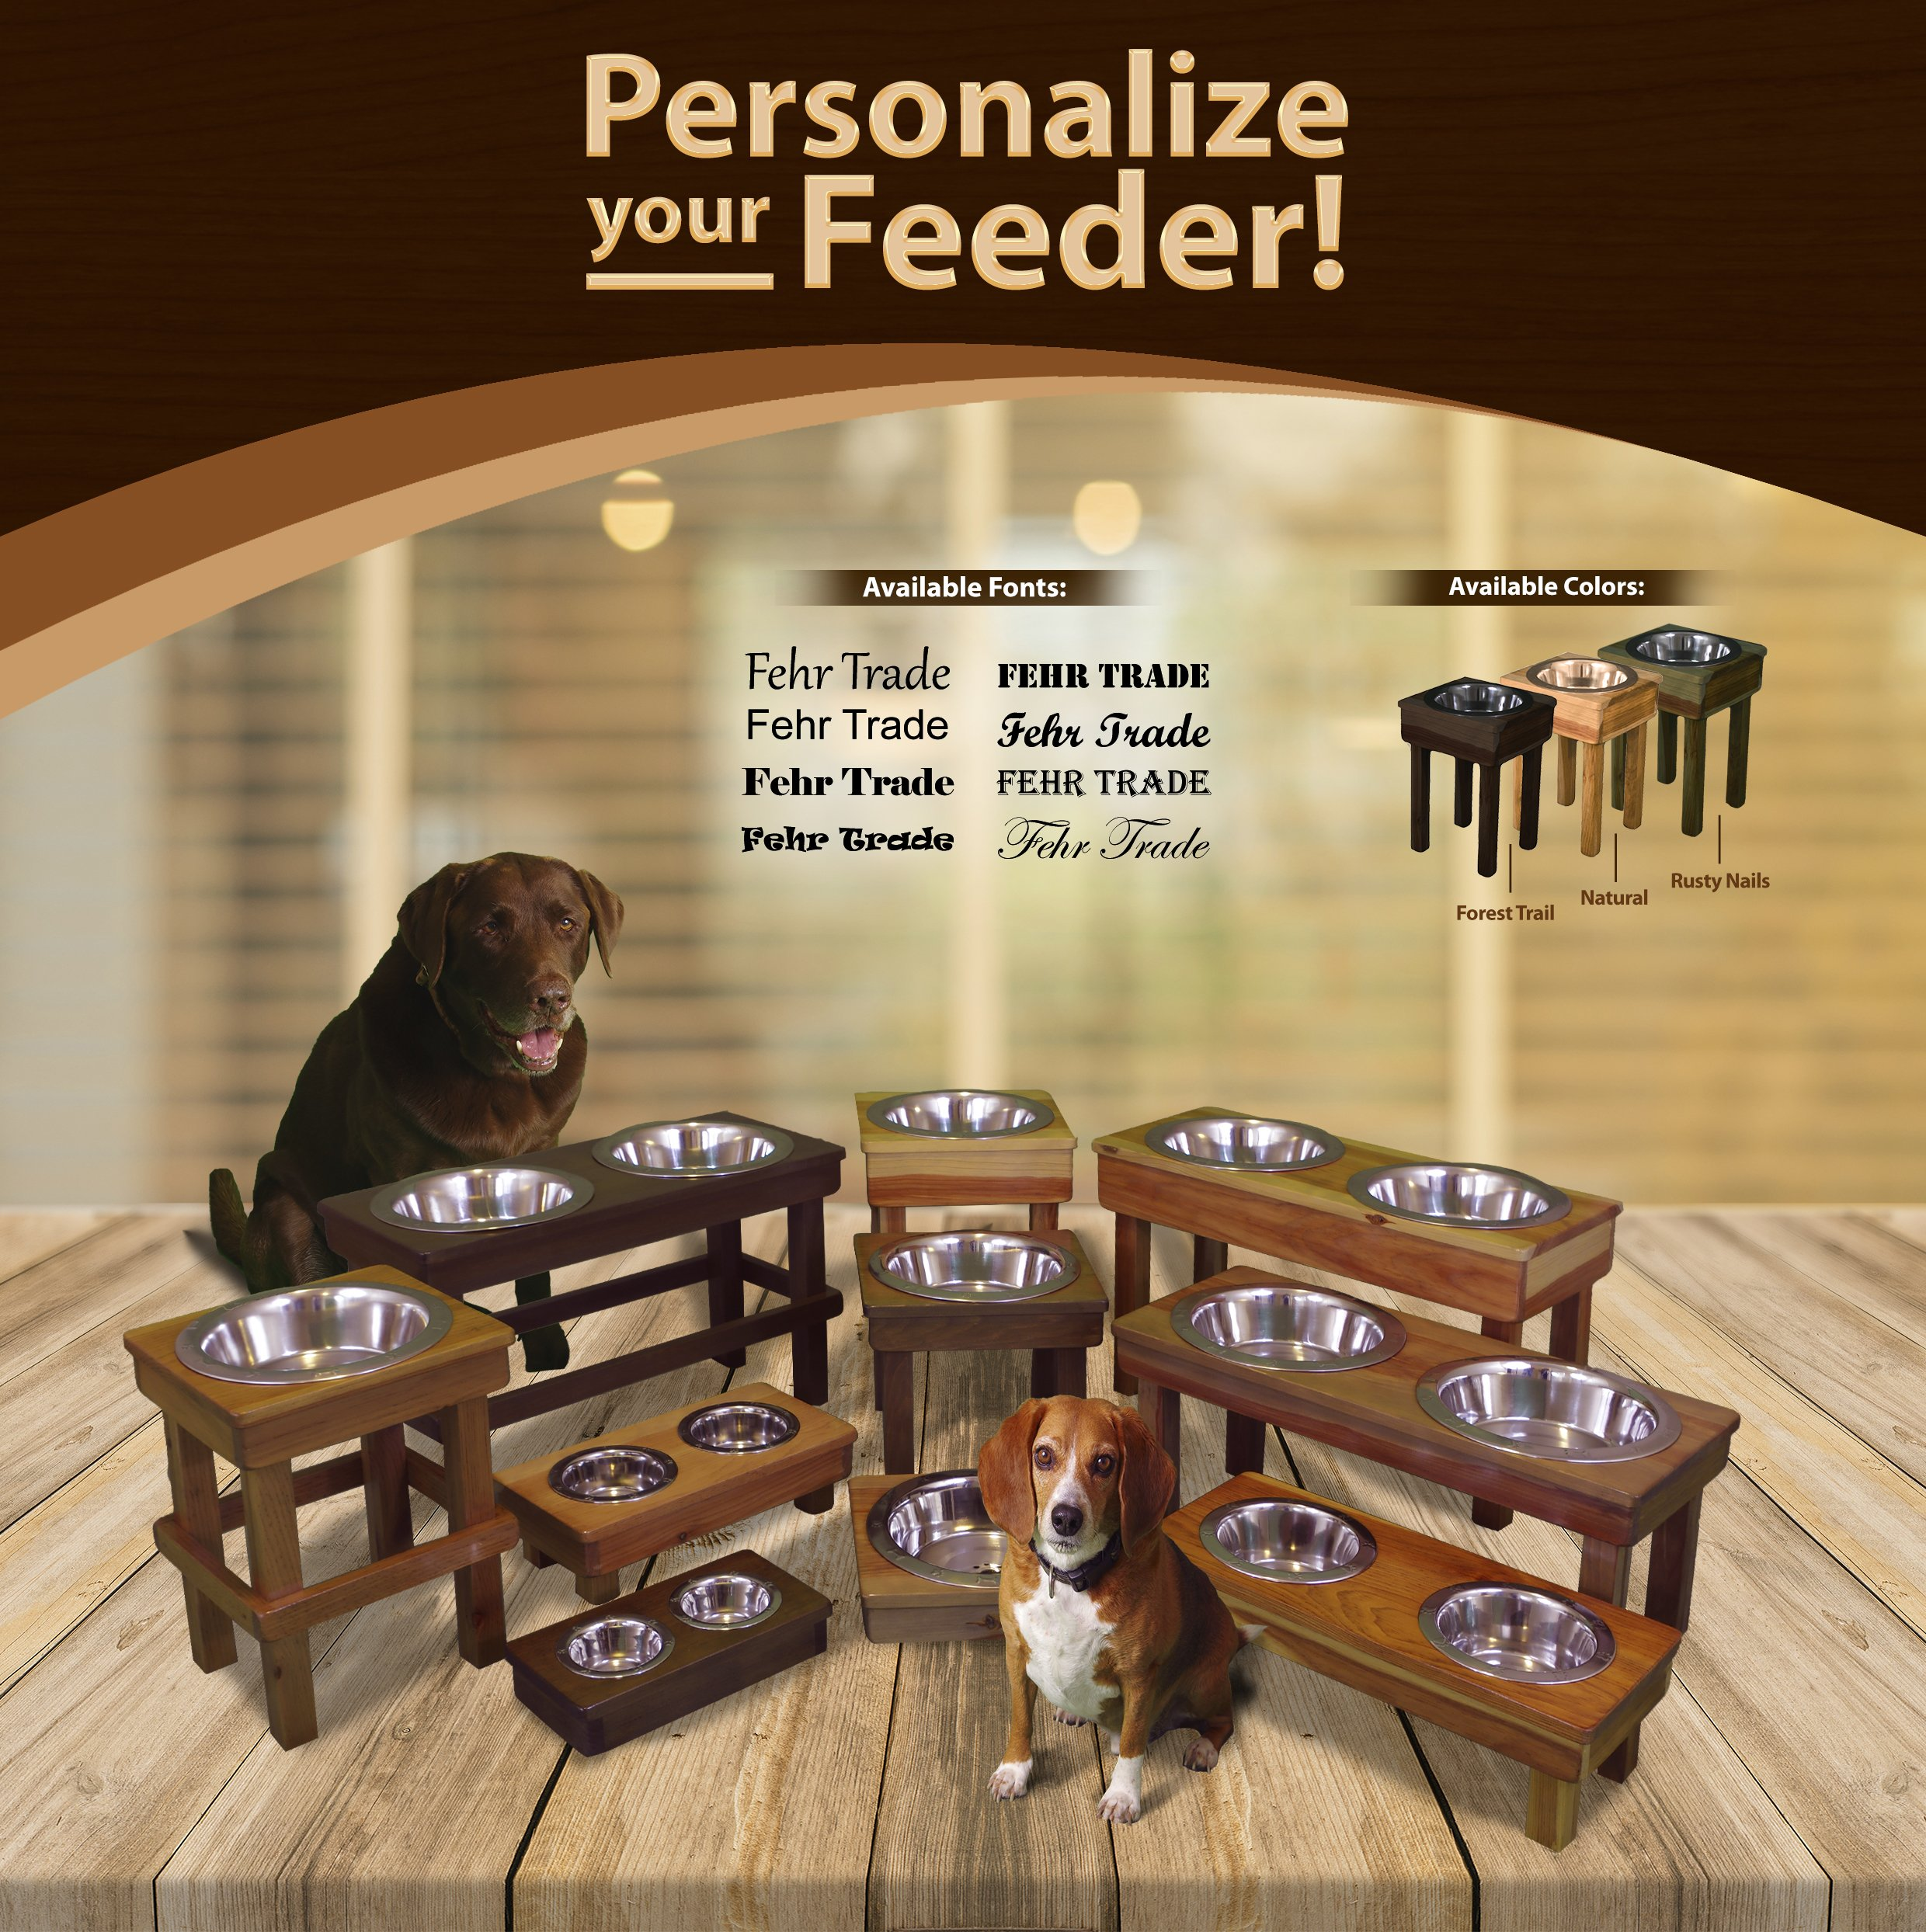 OFTO Raised Dog Single or Double Bowls - Solid Wood Cat and Dog Bowl Stands, with Embossed Stainless Steel Bowl(s) -Large, Medium, and Universal Sizes - Eco-Friendly and Non-Toxic - Made in the USA by OFTO (Image #8)